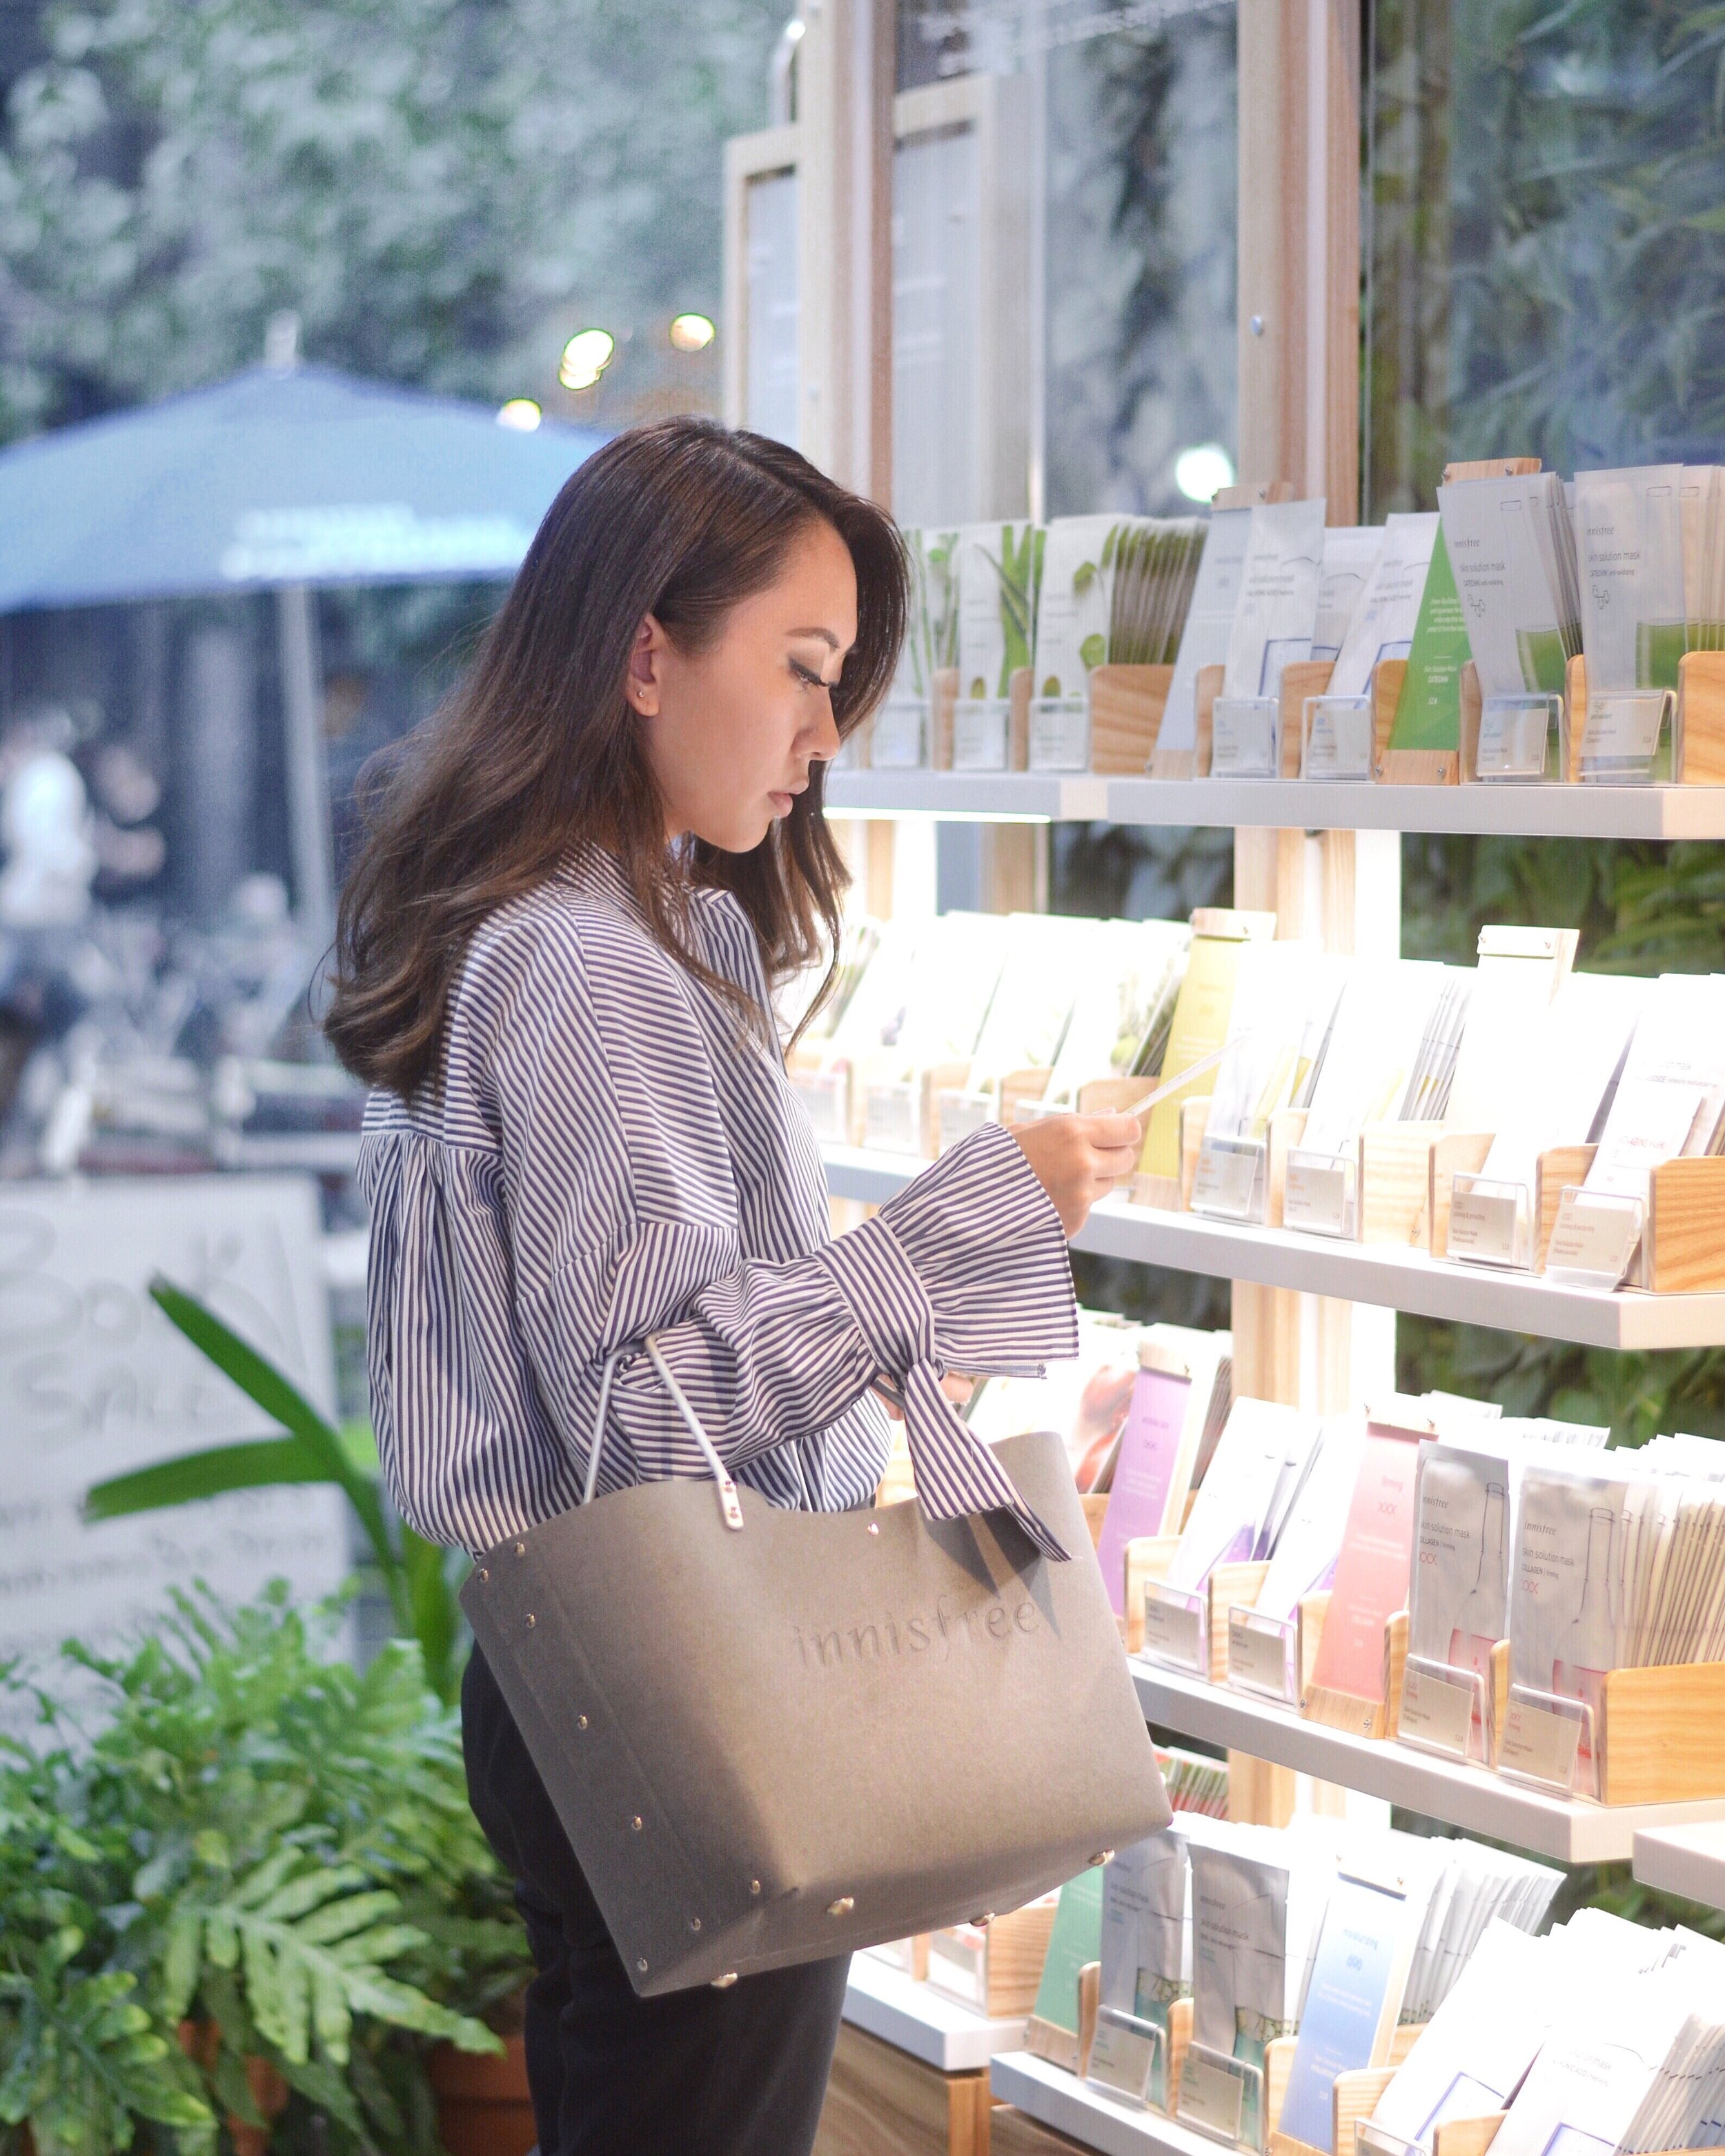 Brands, like Innisfree, are debuting their first U.S. locations in Union Square. Credit: Jenny Huang.